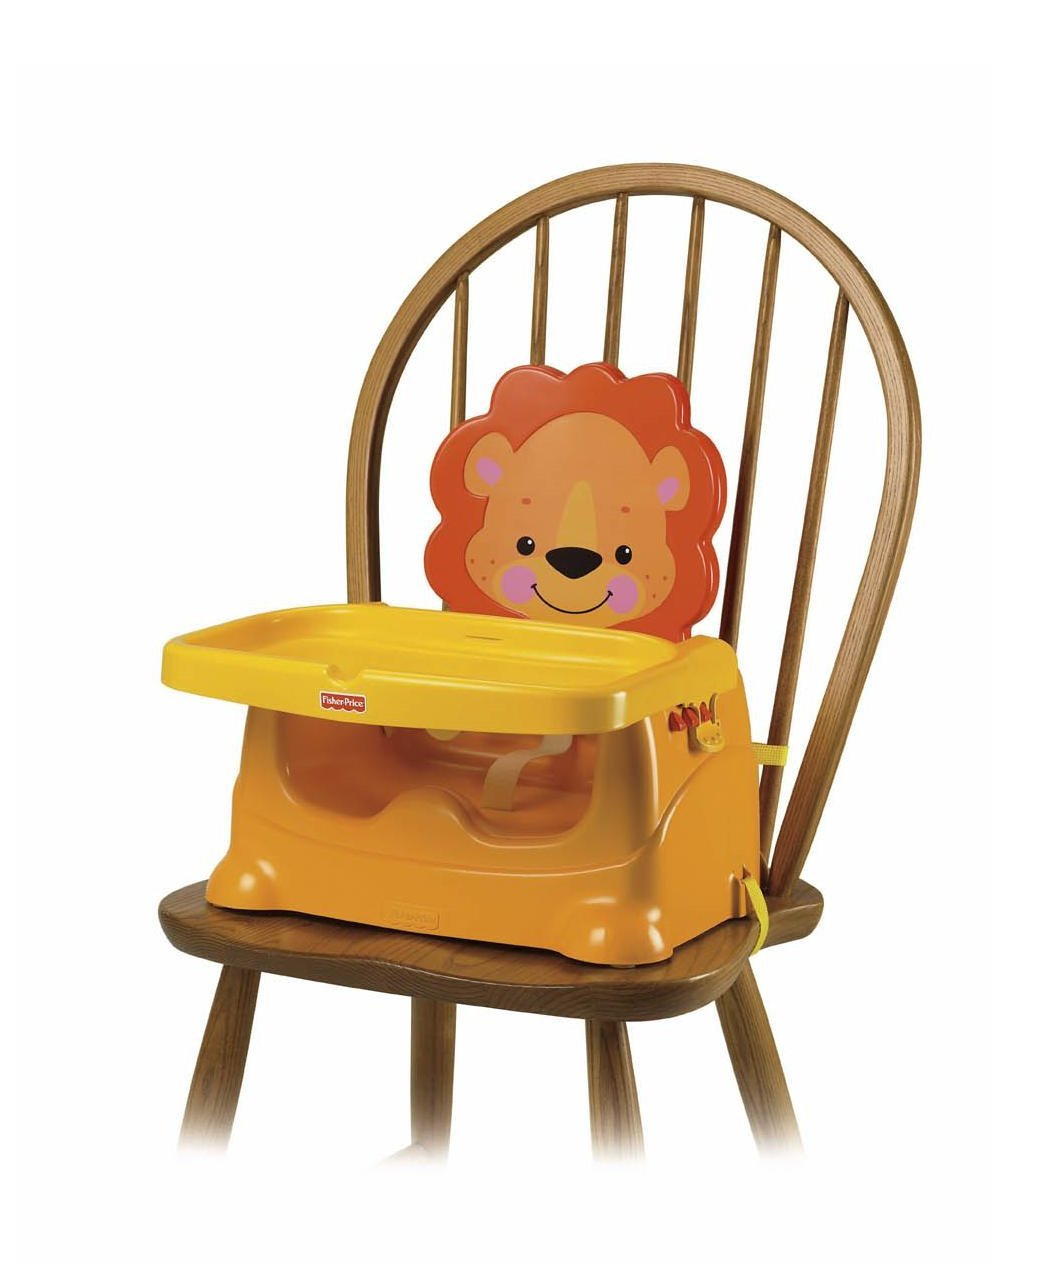 Fisher price booster chair - Amazon Com Fisher Price Healthy Care Lion Booster Seat Yellow Discontinued By Manufacturer Chair Booster Seats Baby